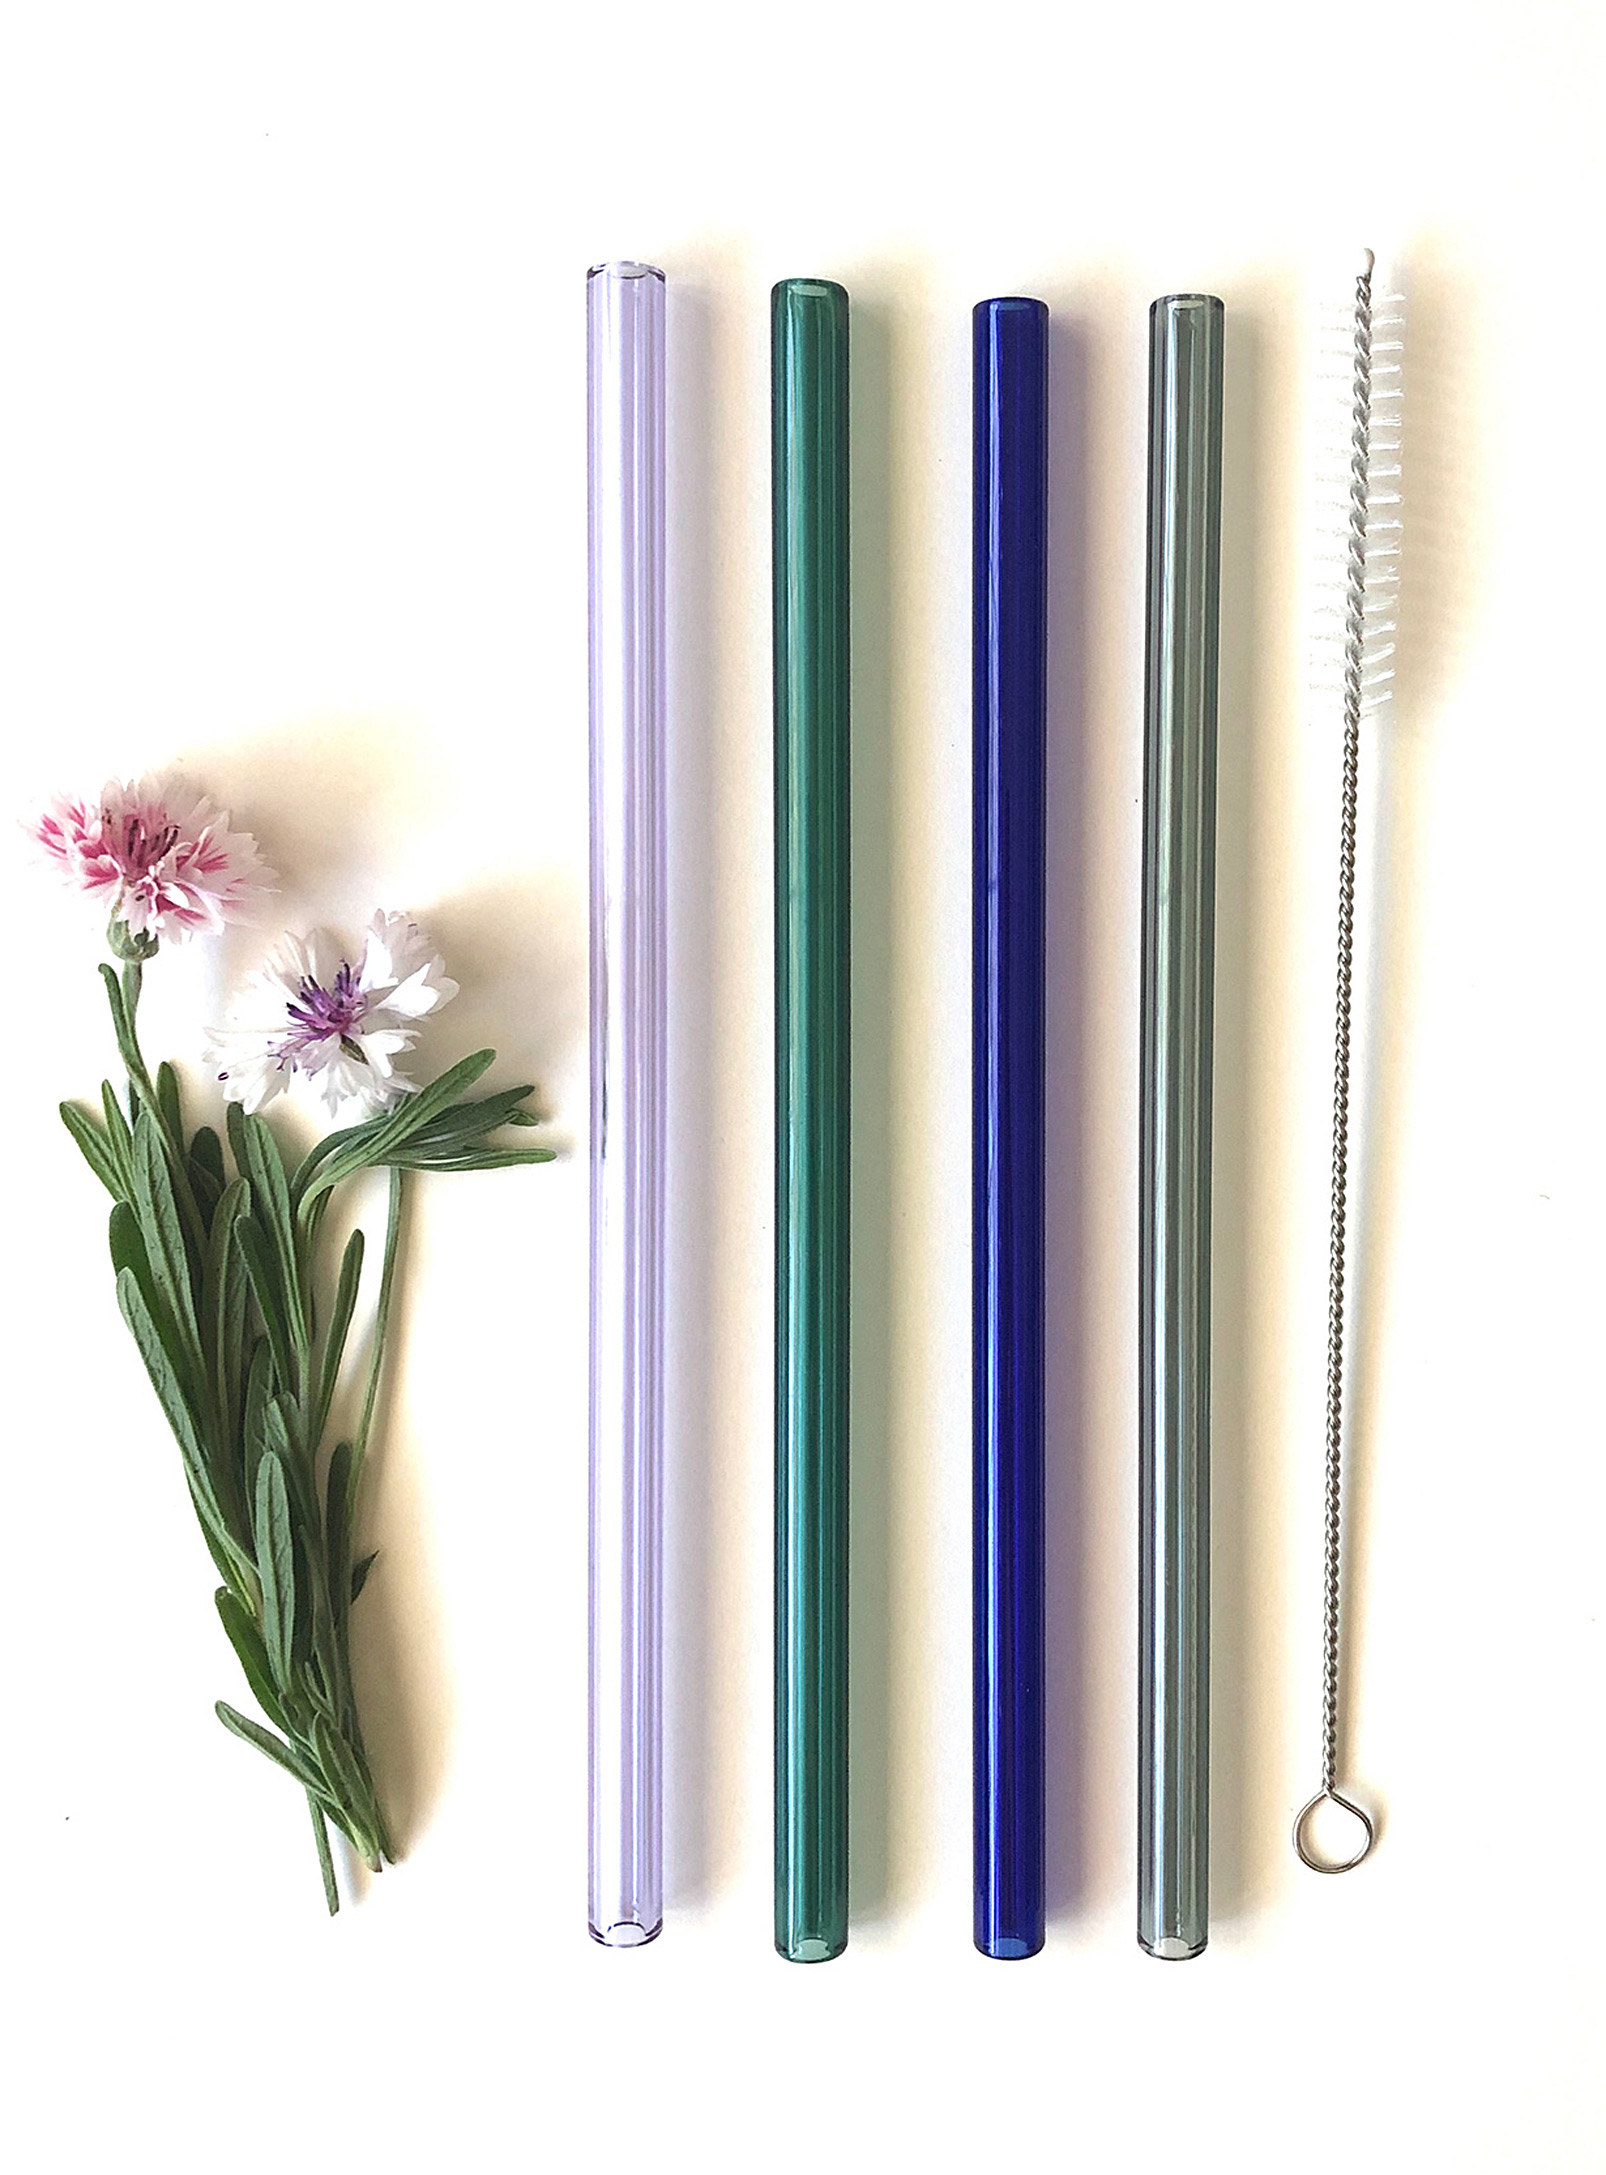 A set of four glass straws and a small cleaning brush on a plain background